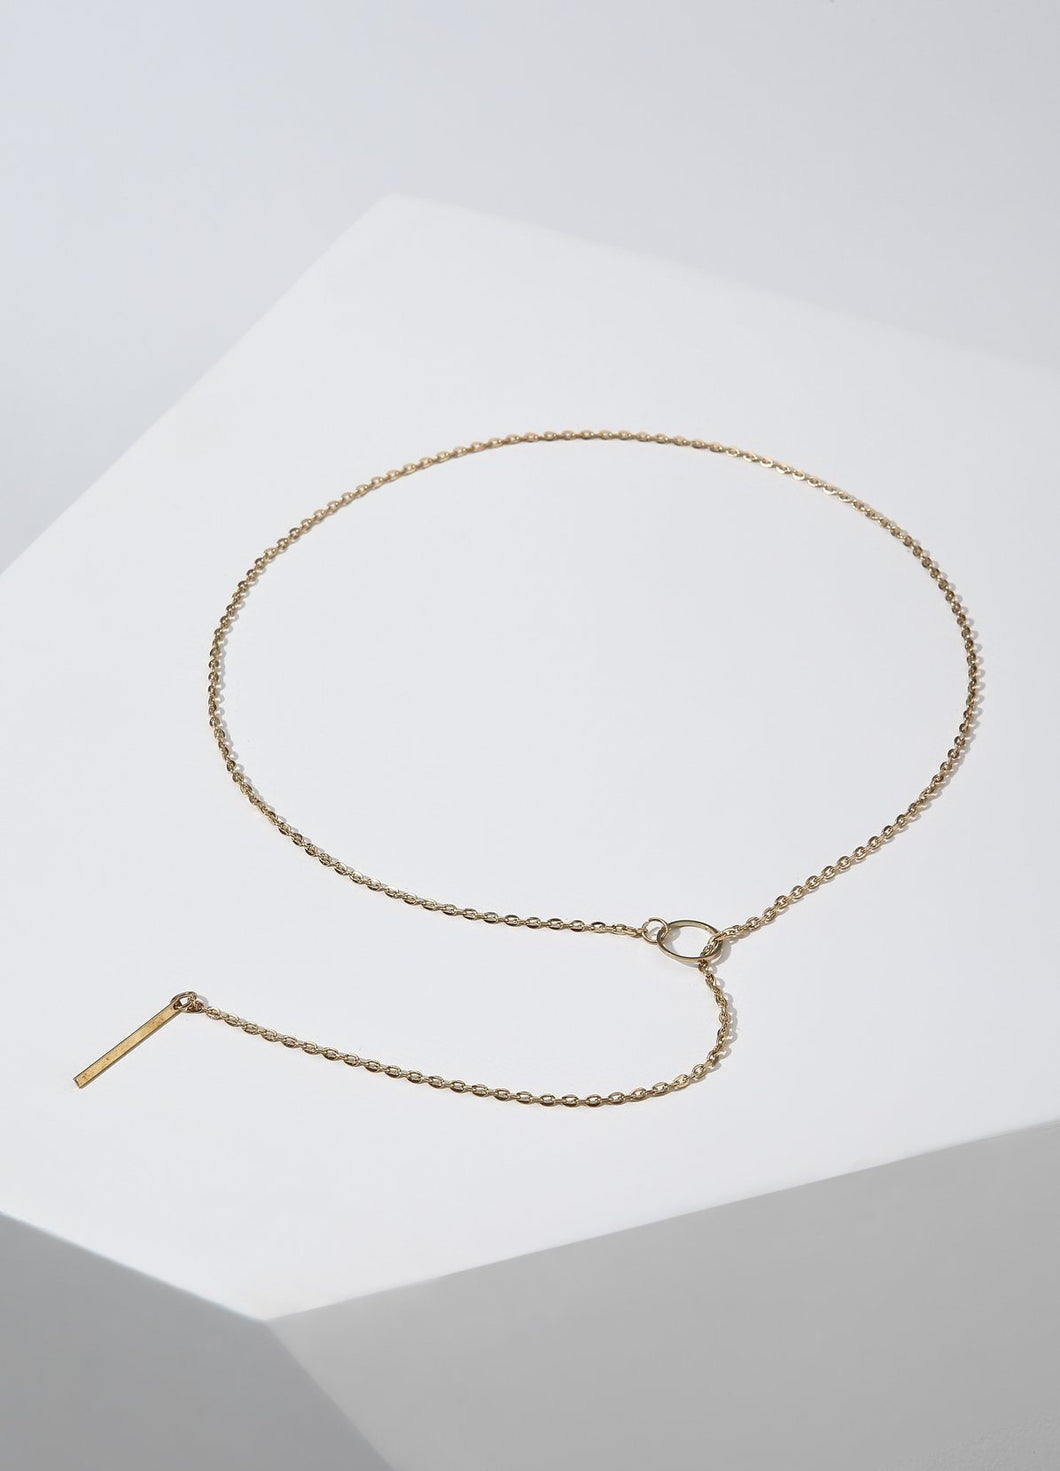 The Lasso Necklaces - FIACCI